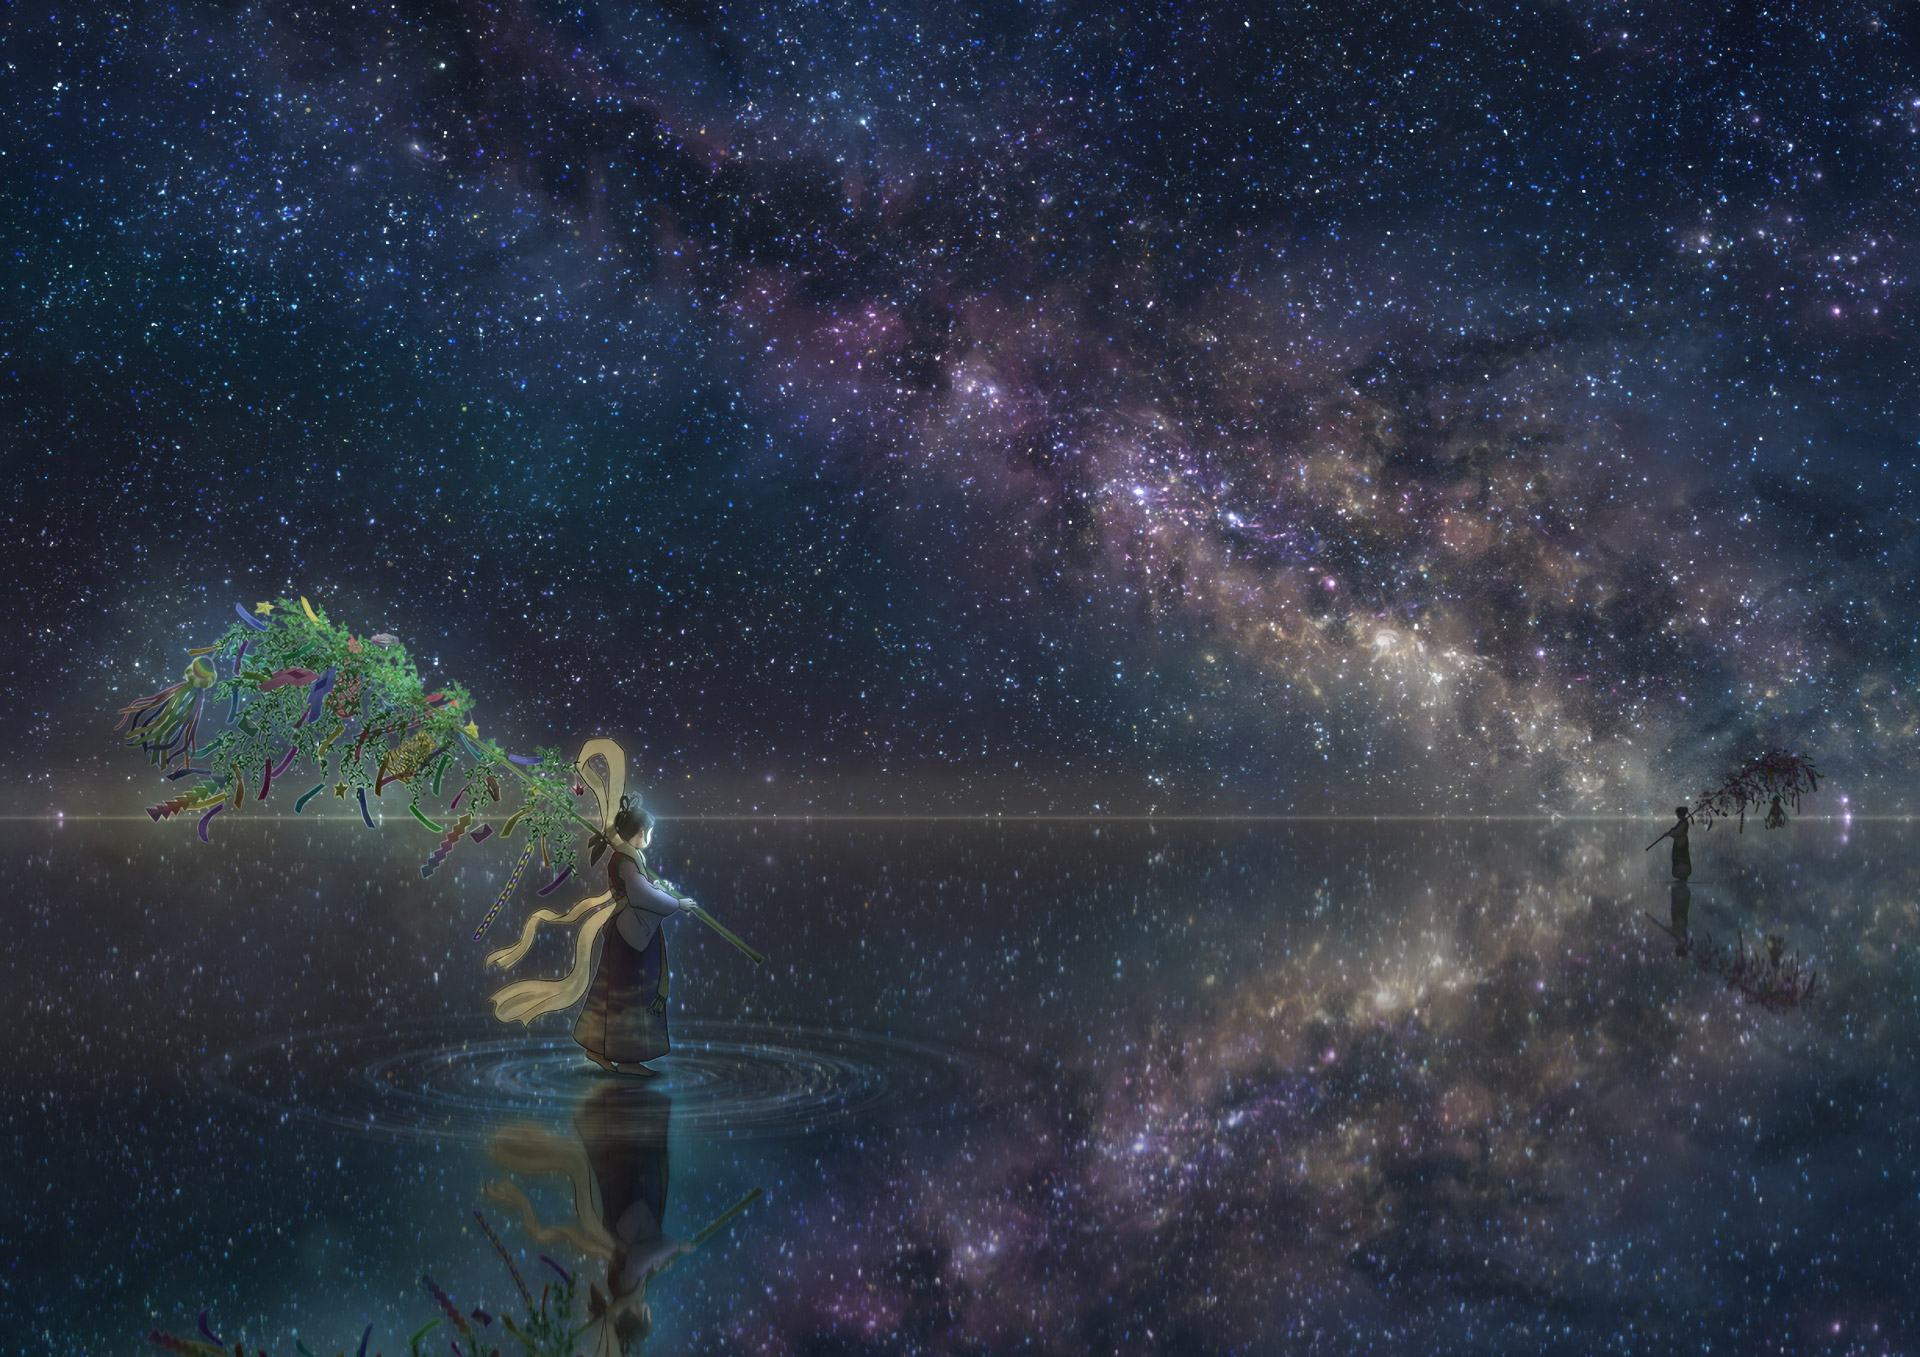 Anime Wallpaper Girl Looking At Stars Anime Girl Horizon Night Reflection Stars Hd Anime 4k